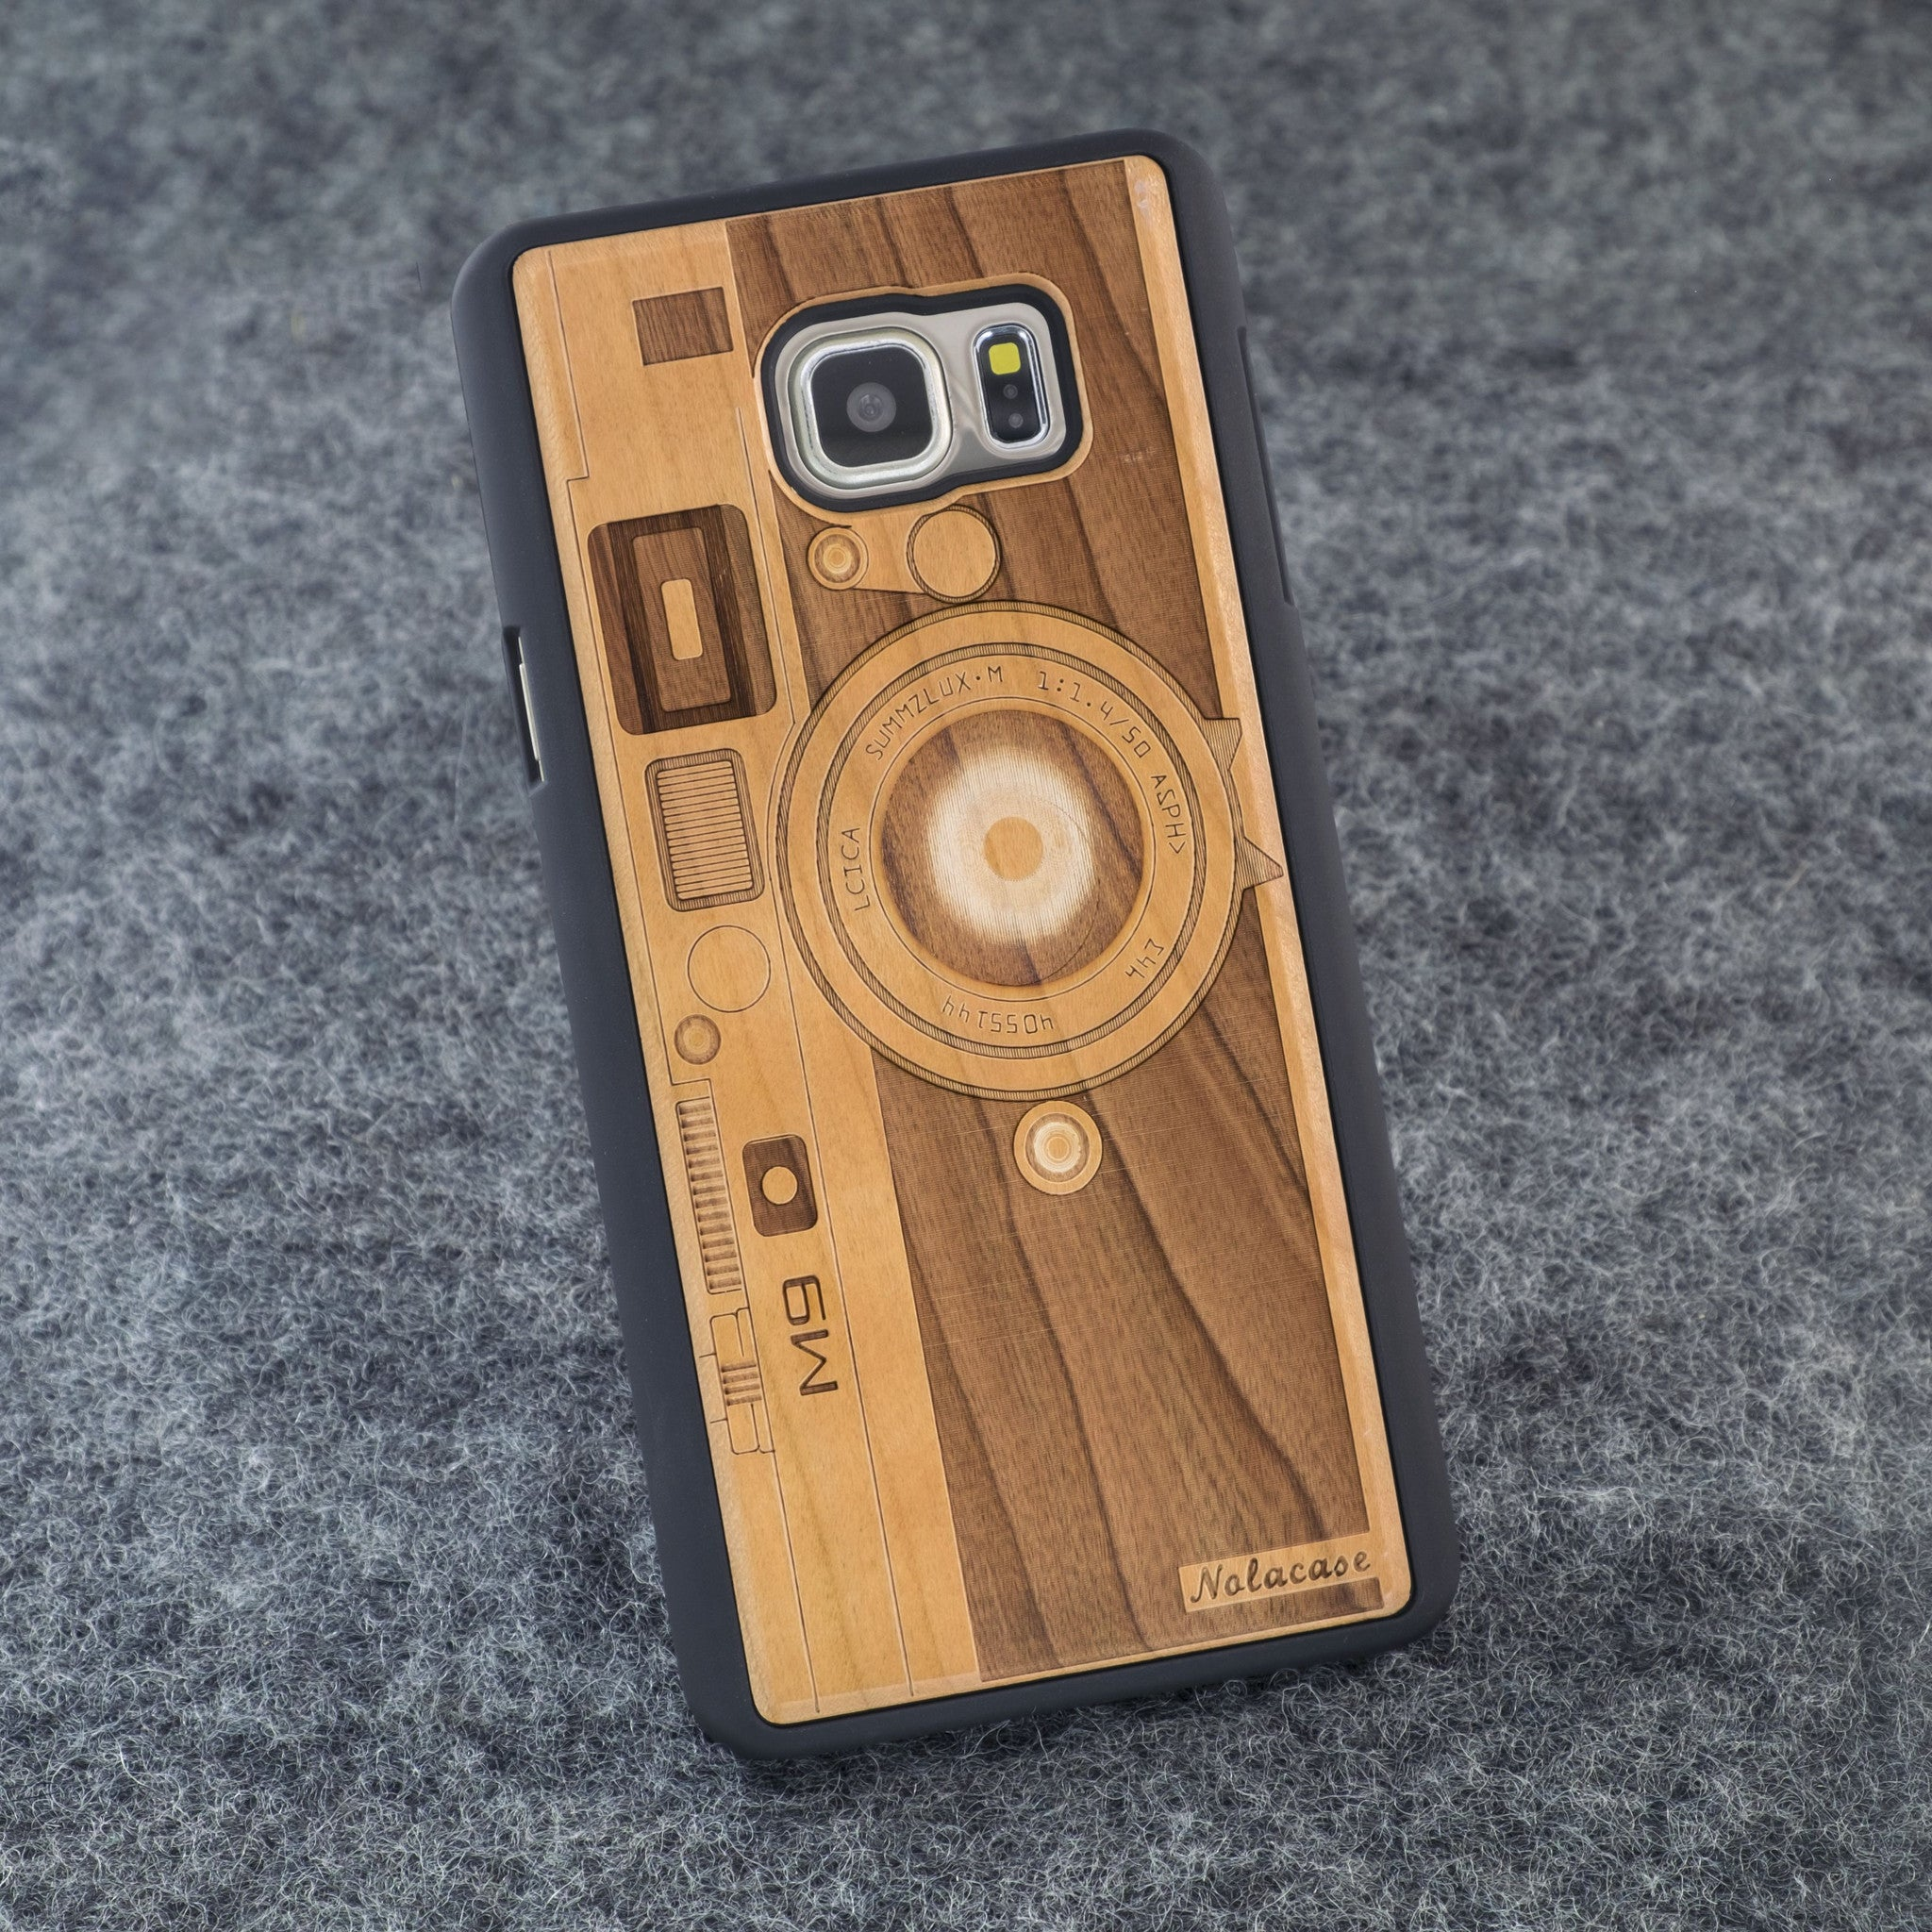 Samsung Note 5 M9 Camera Slim Wood Case - NOLACASE